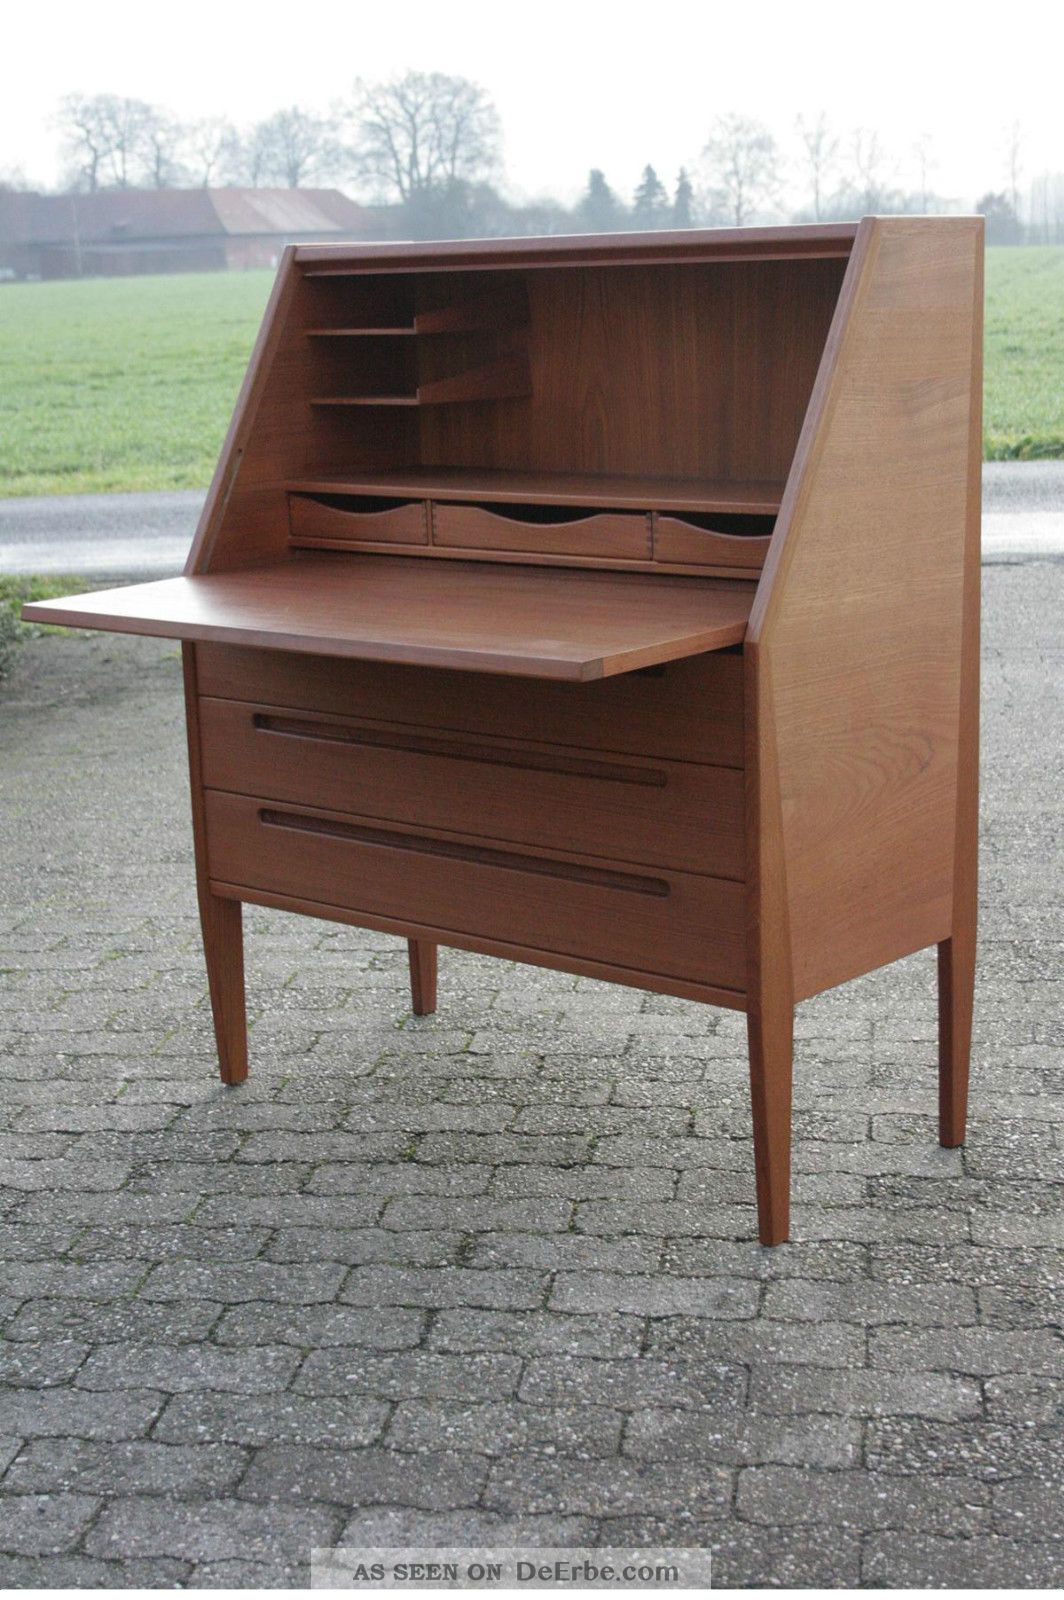 hjn m bler sekret r 50er 60er teak danish modern mid century schreibtisch. Black Bedroom Furniture Sets. Home Design Ideas